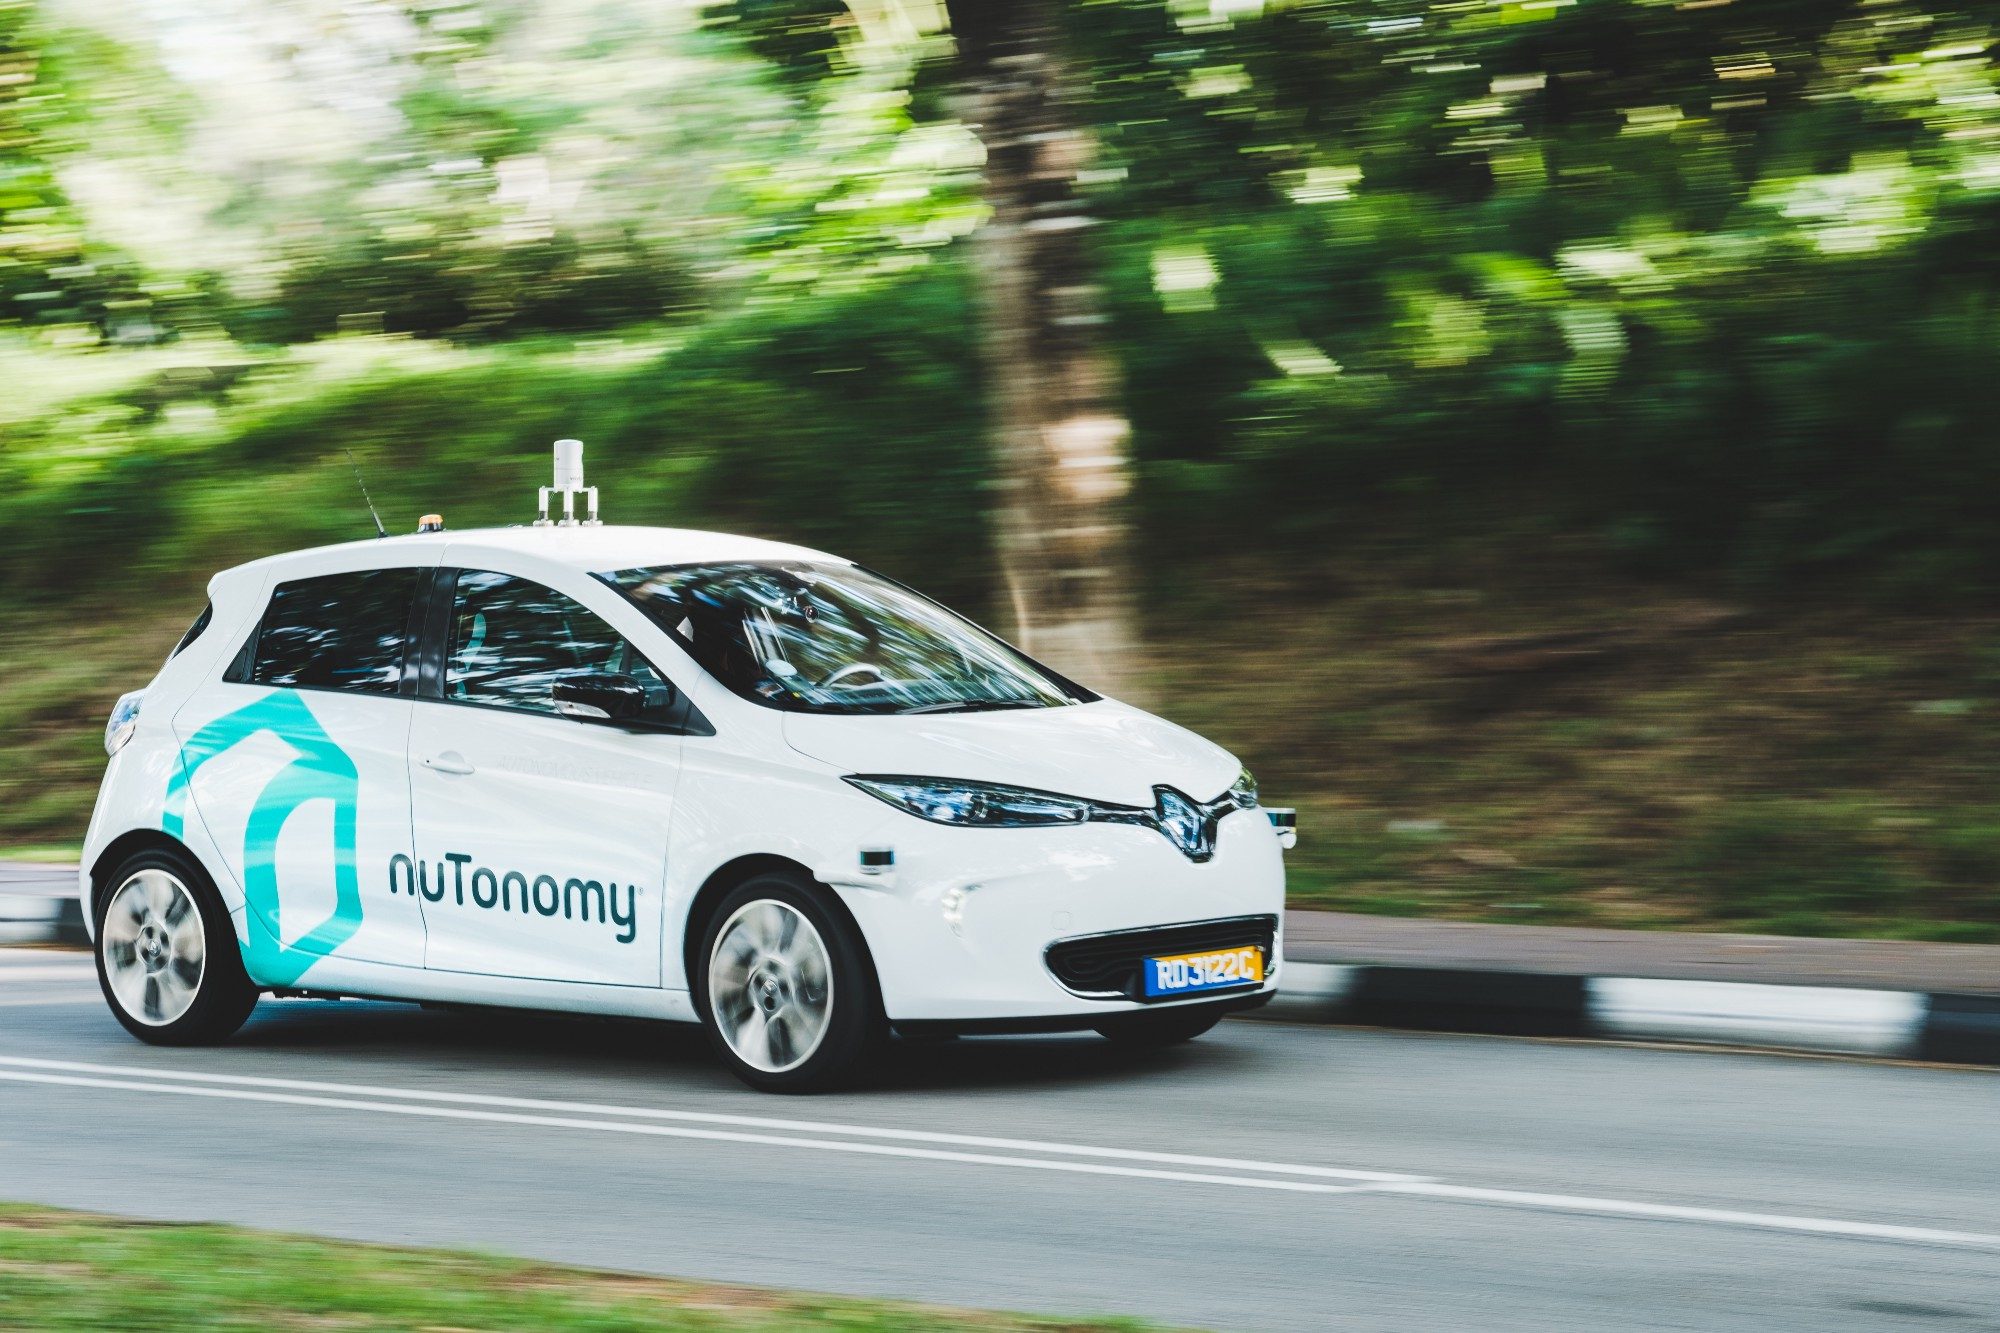 nuTonomy hopes to launch paid self driving cars in 2018 and other news